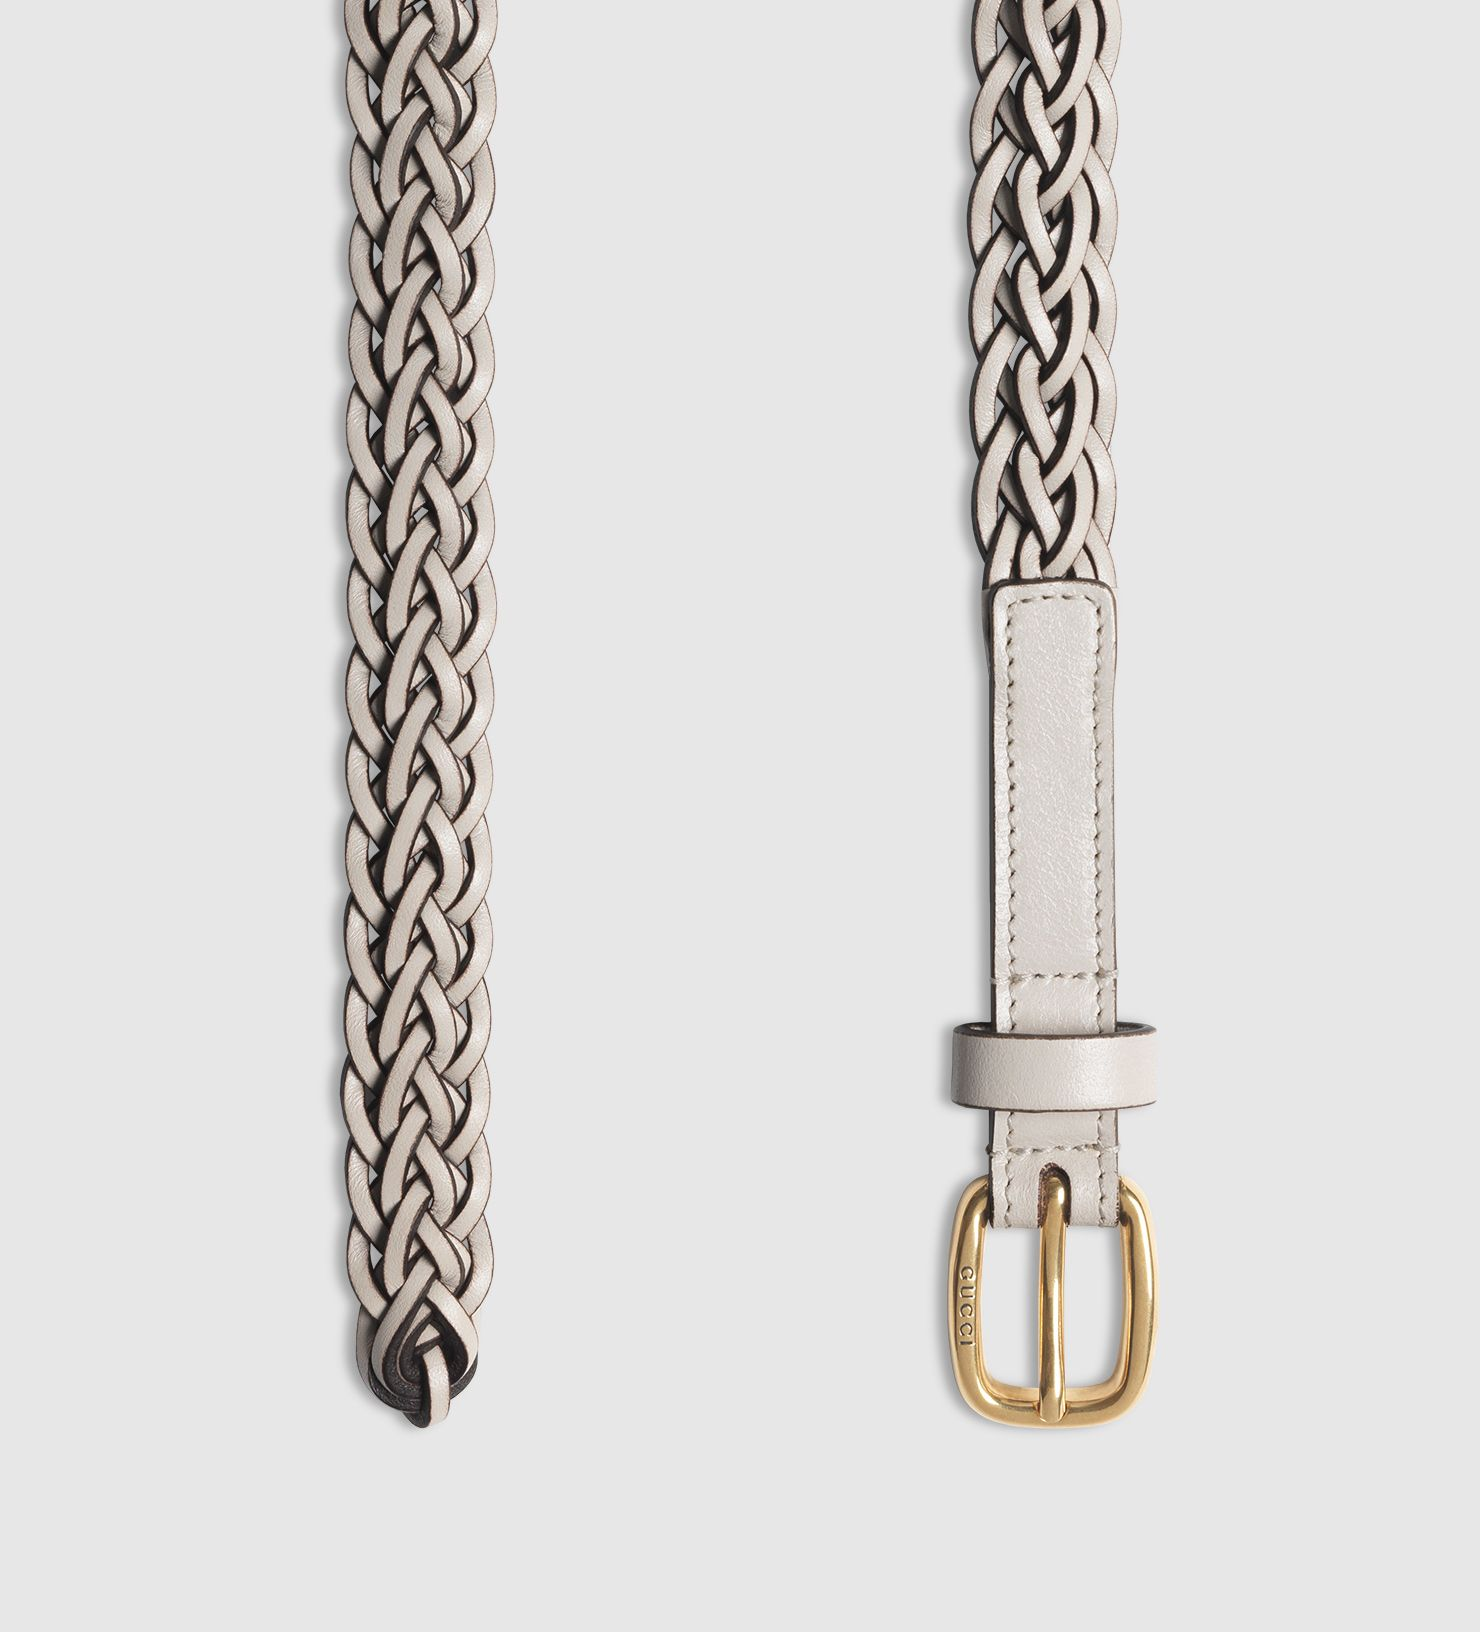 628ff63f674 Gucci Thin Hand-braided Leather Belt in Silver